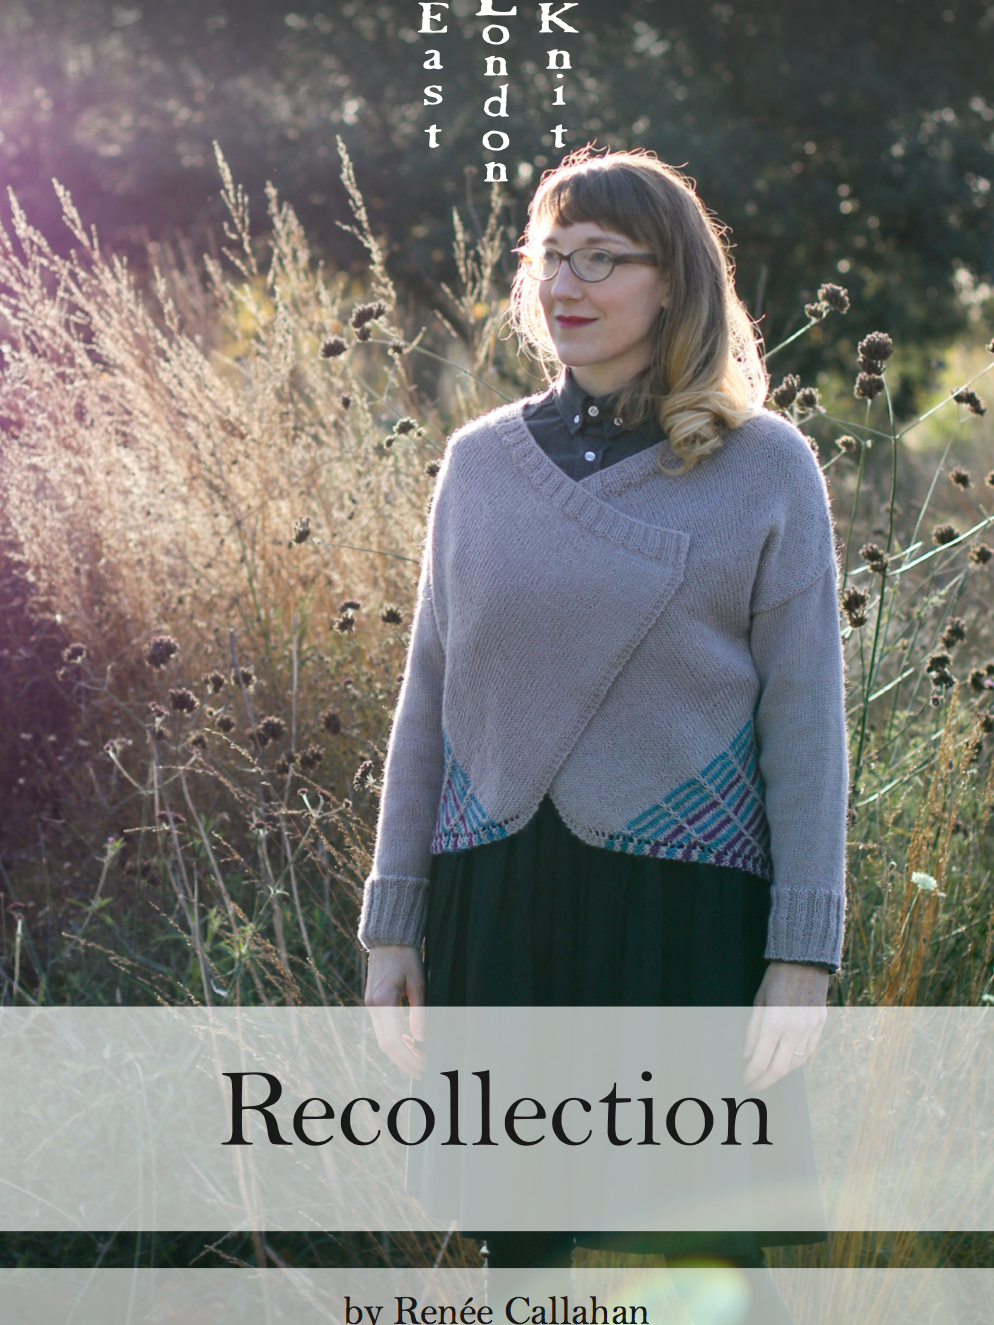 Recollection_by_Renée_Callahan.png